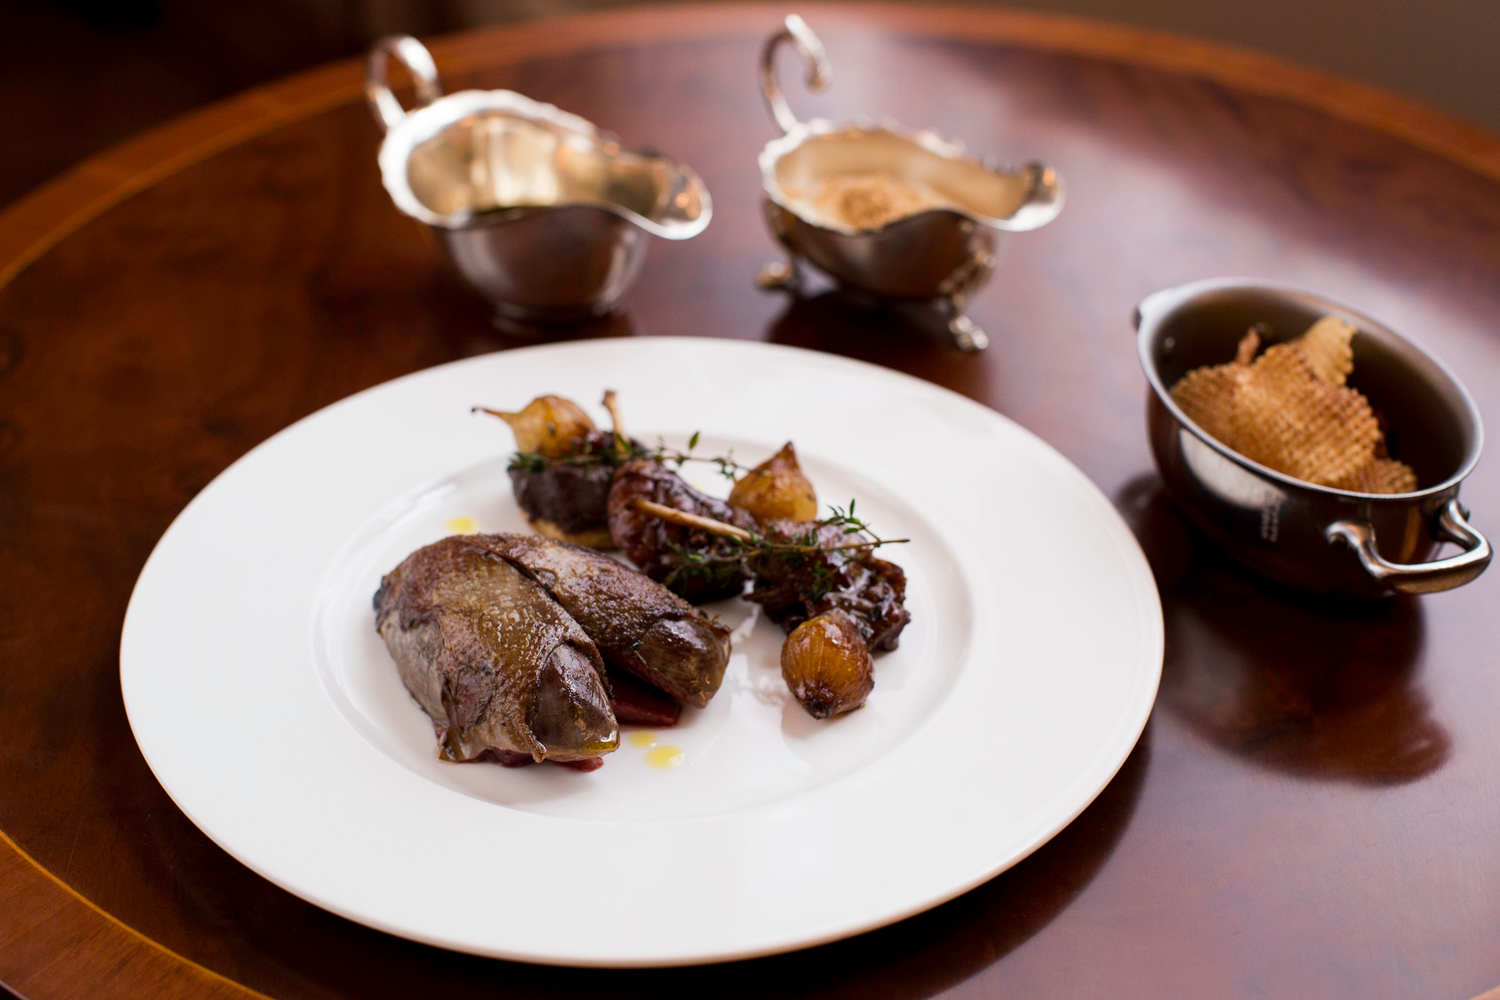 The Game Bird grouse dish with potatoes and sauces